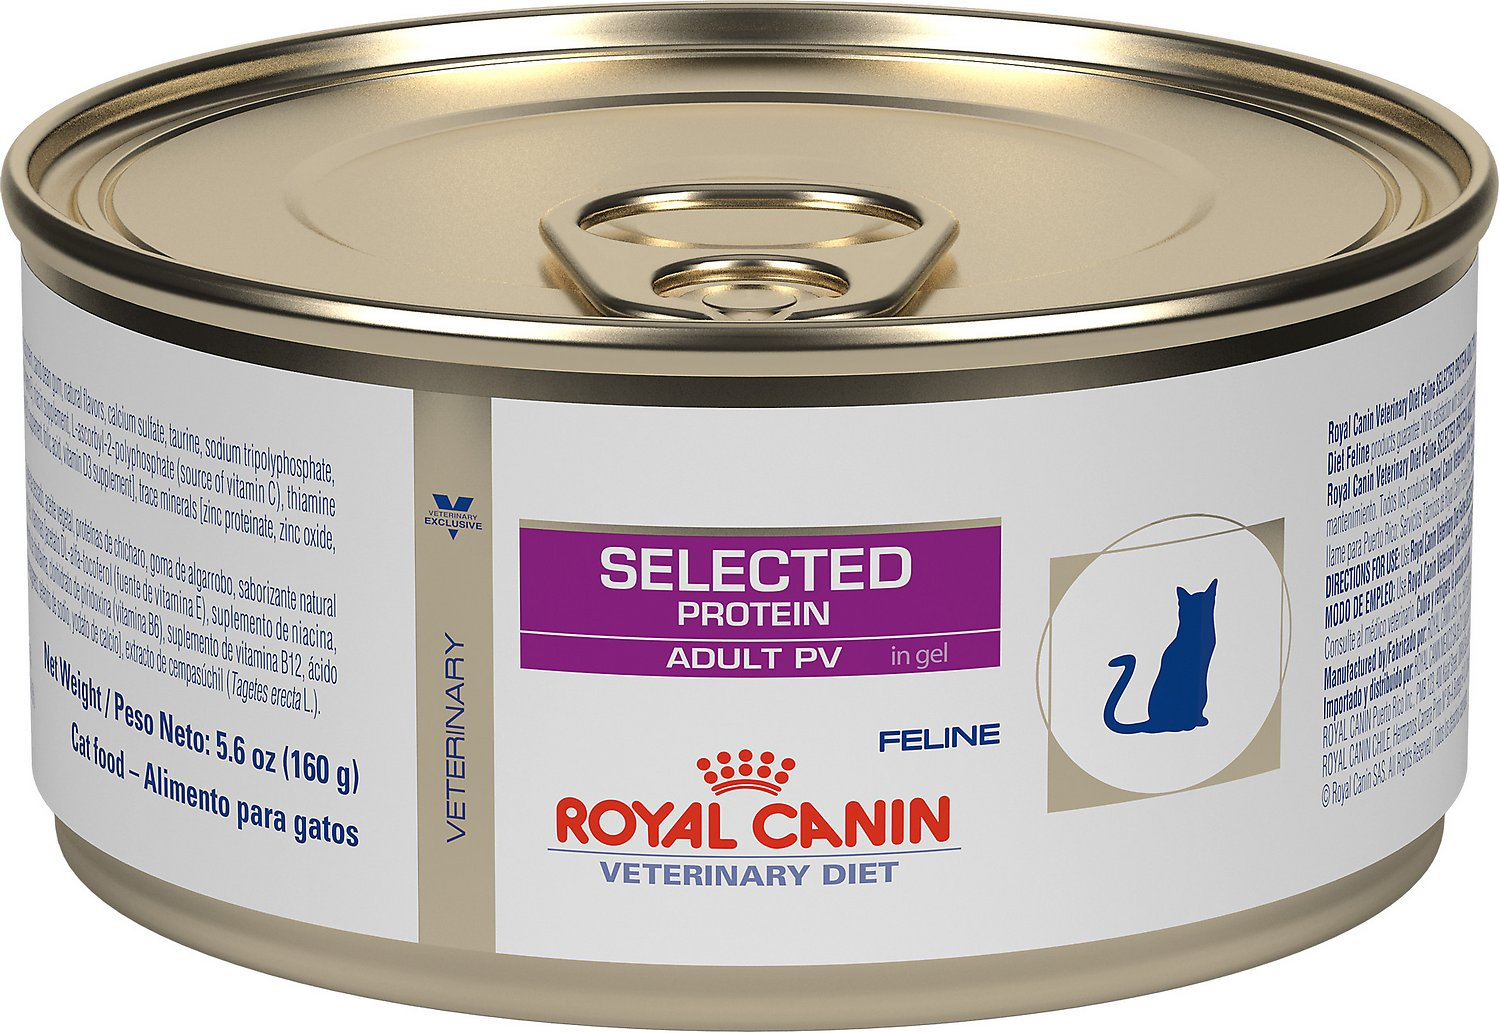 Royal Canin Selected Protein Cat Food